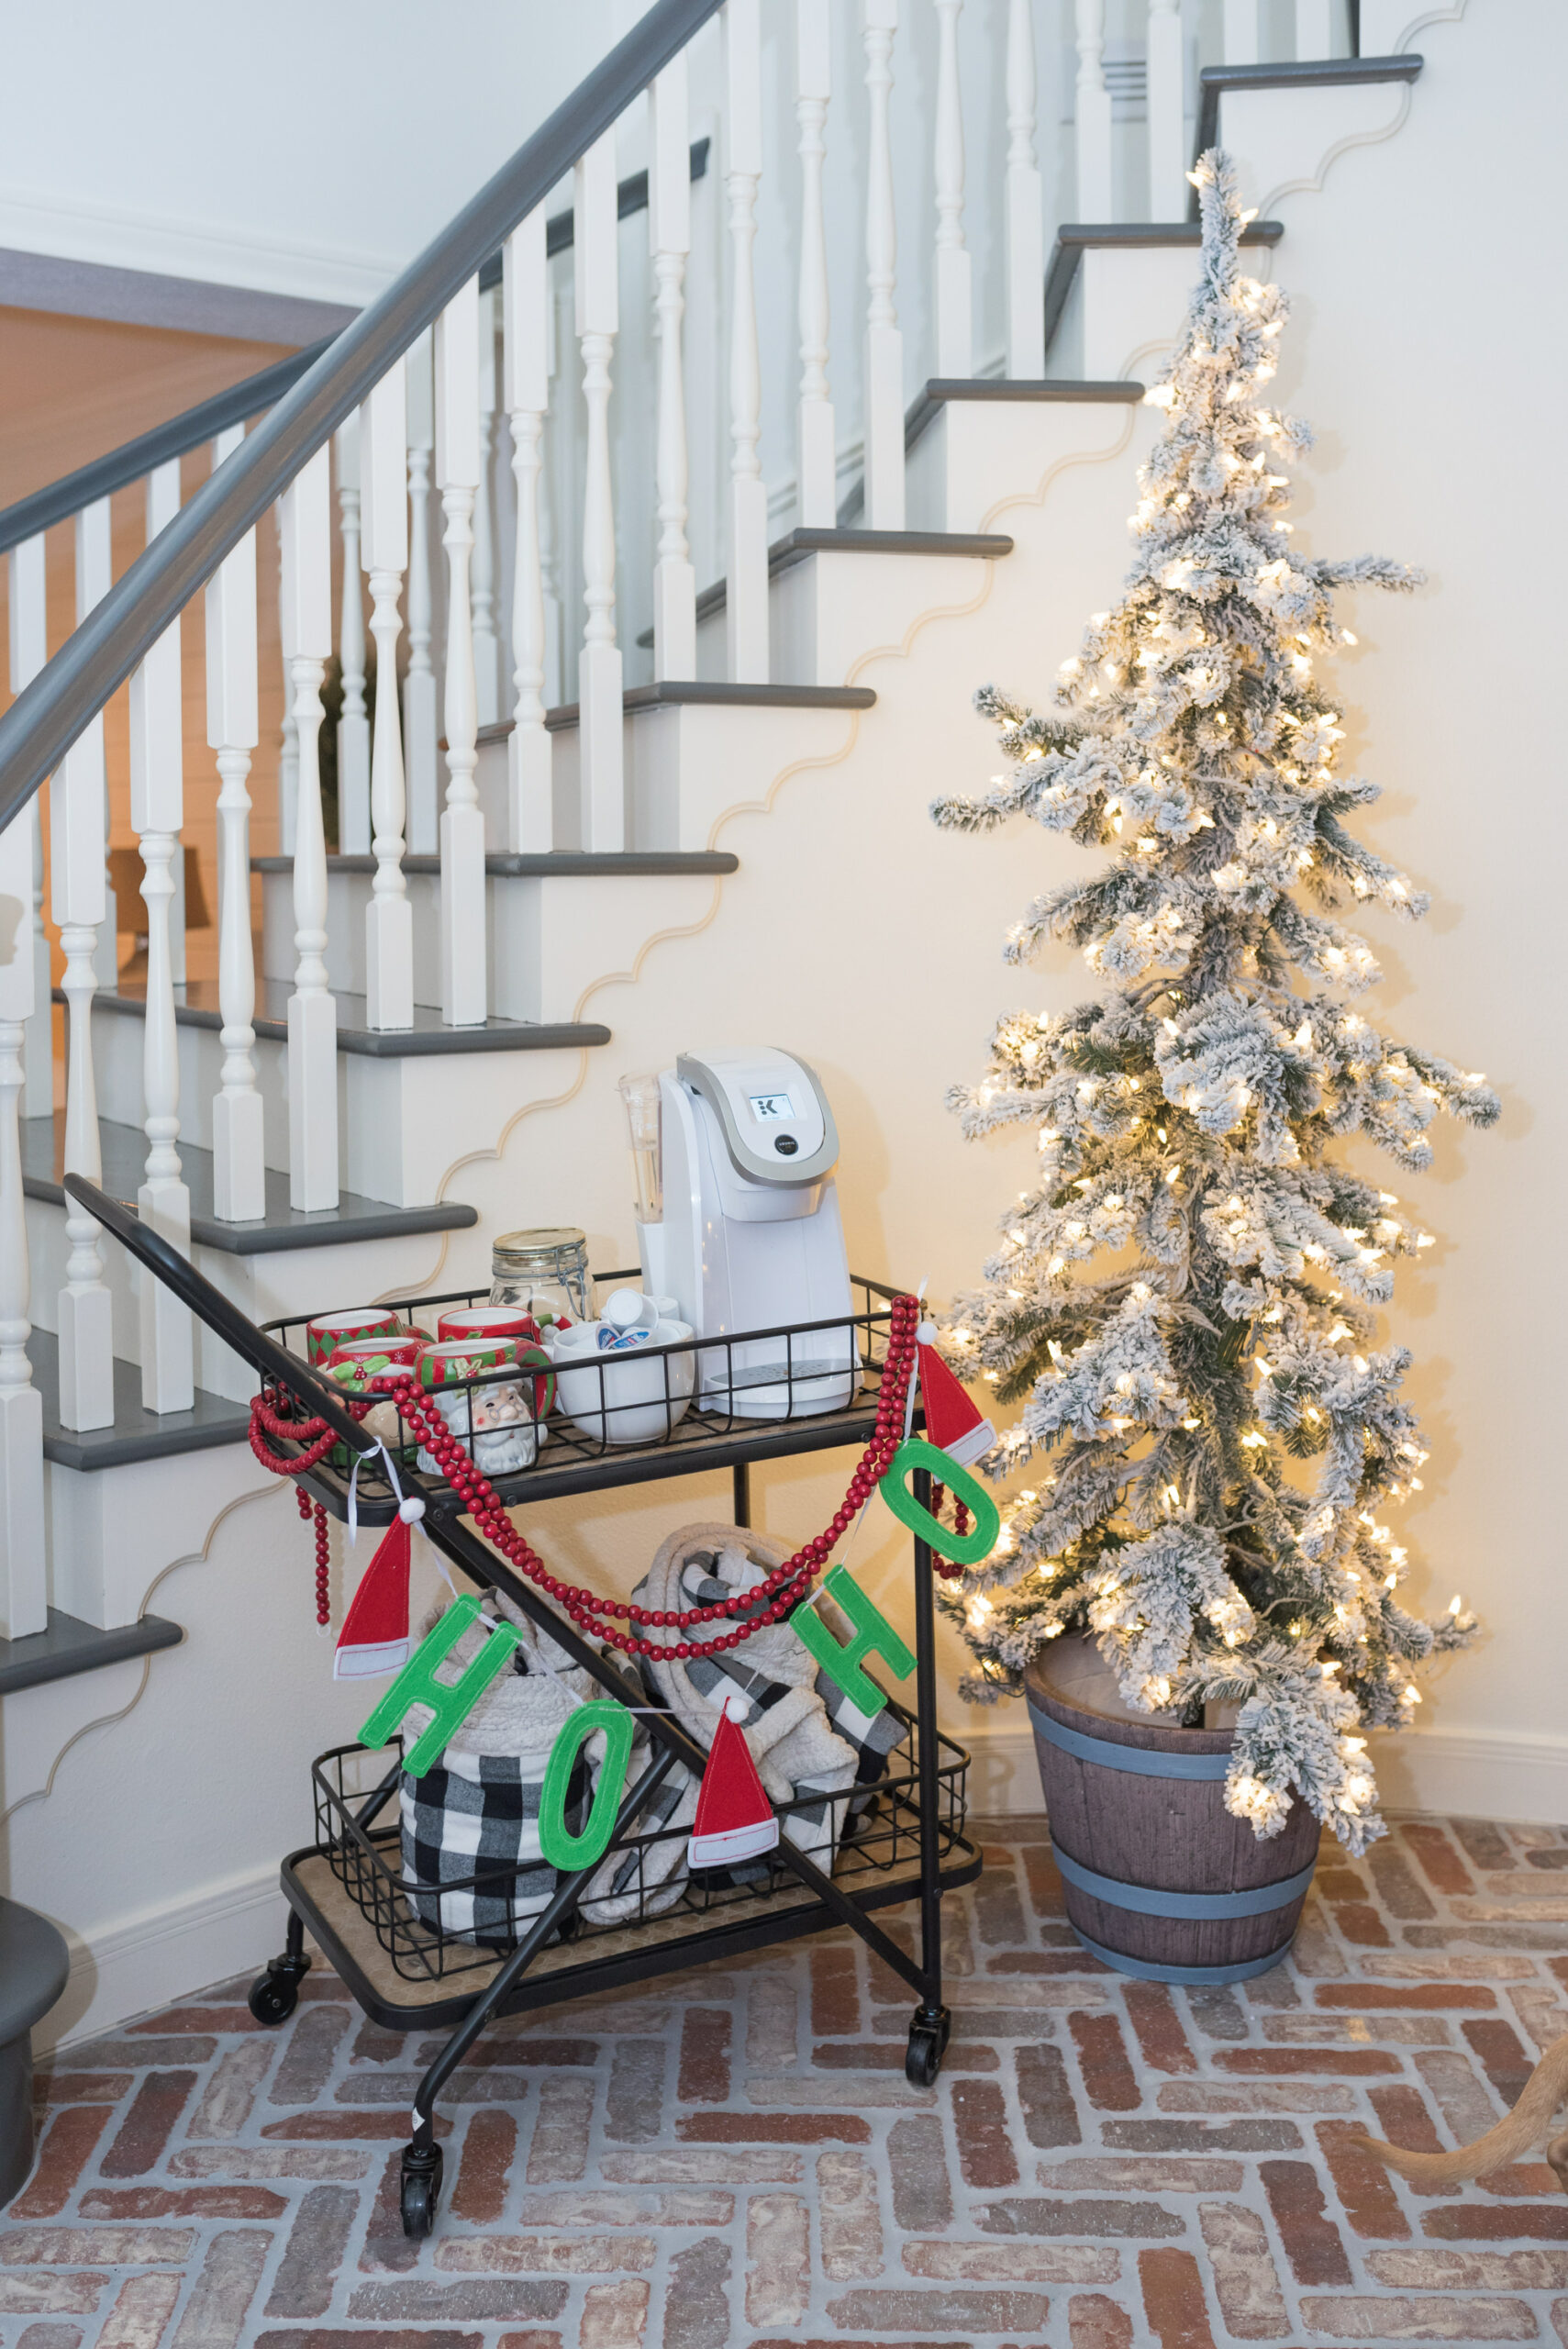 Hot Cocoa Bar by popular Houston lifestyle blog, Fancy Ashley: image of a black metal bar cart containing a Keurig, Santa mugs, Christmas garland, mini marshmallows, and coco pods.